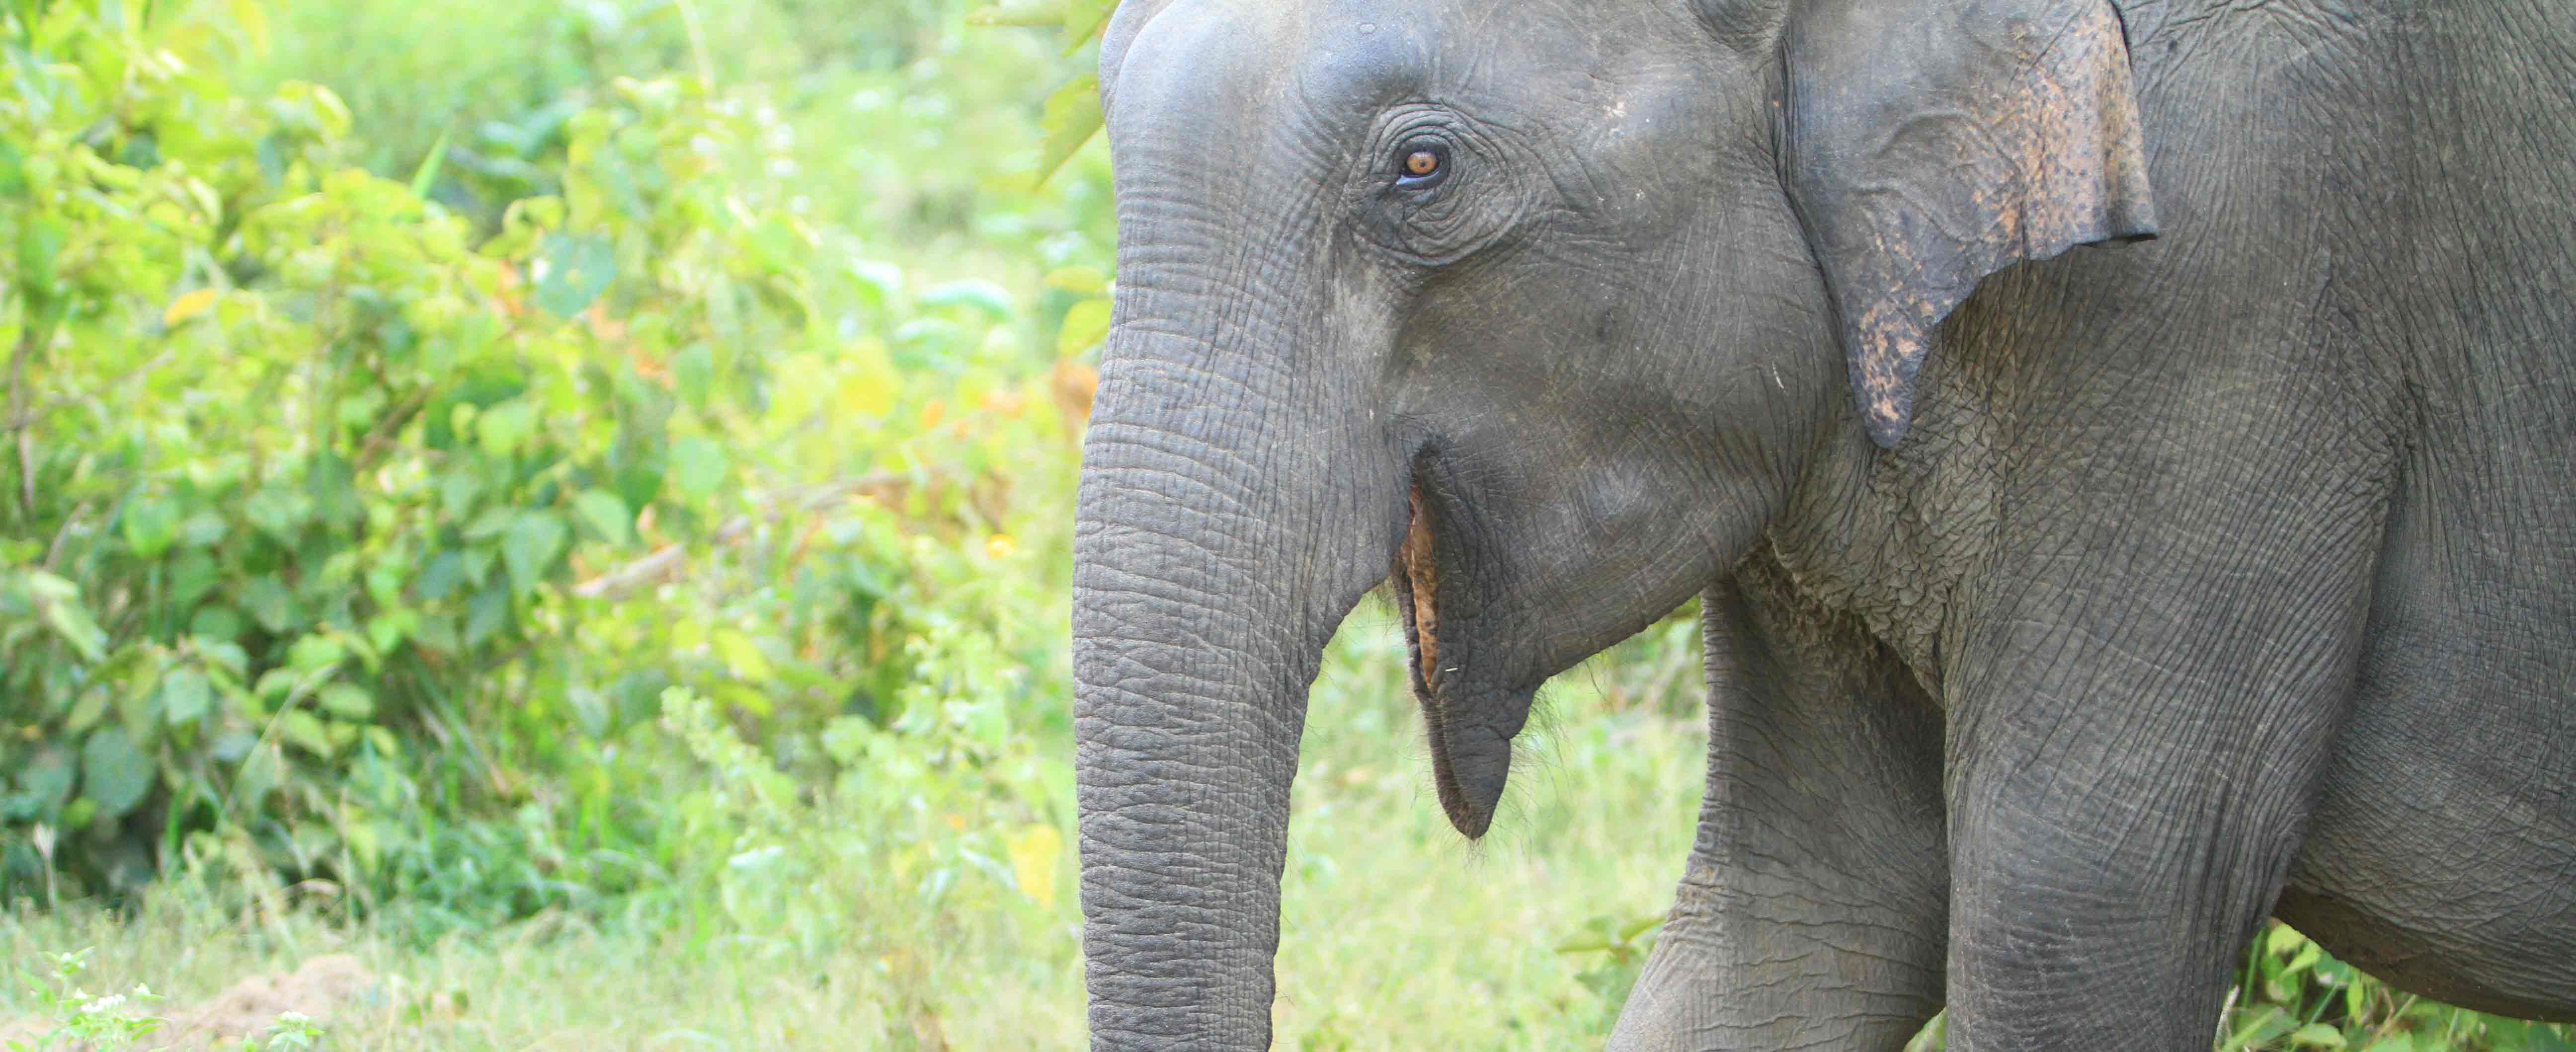 Elephant tours Sri Lanka - Elephant at Udawalawe National Prak